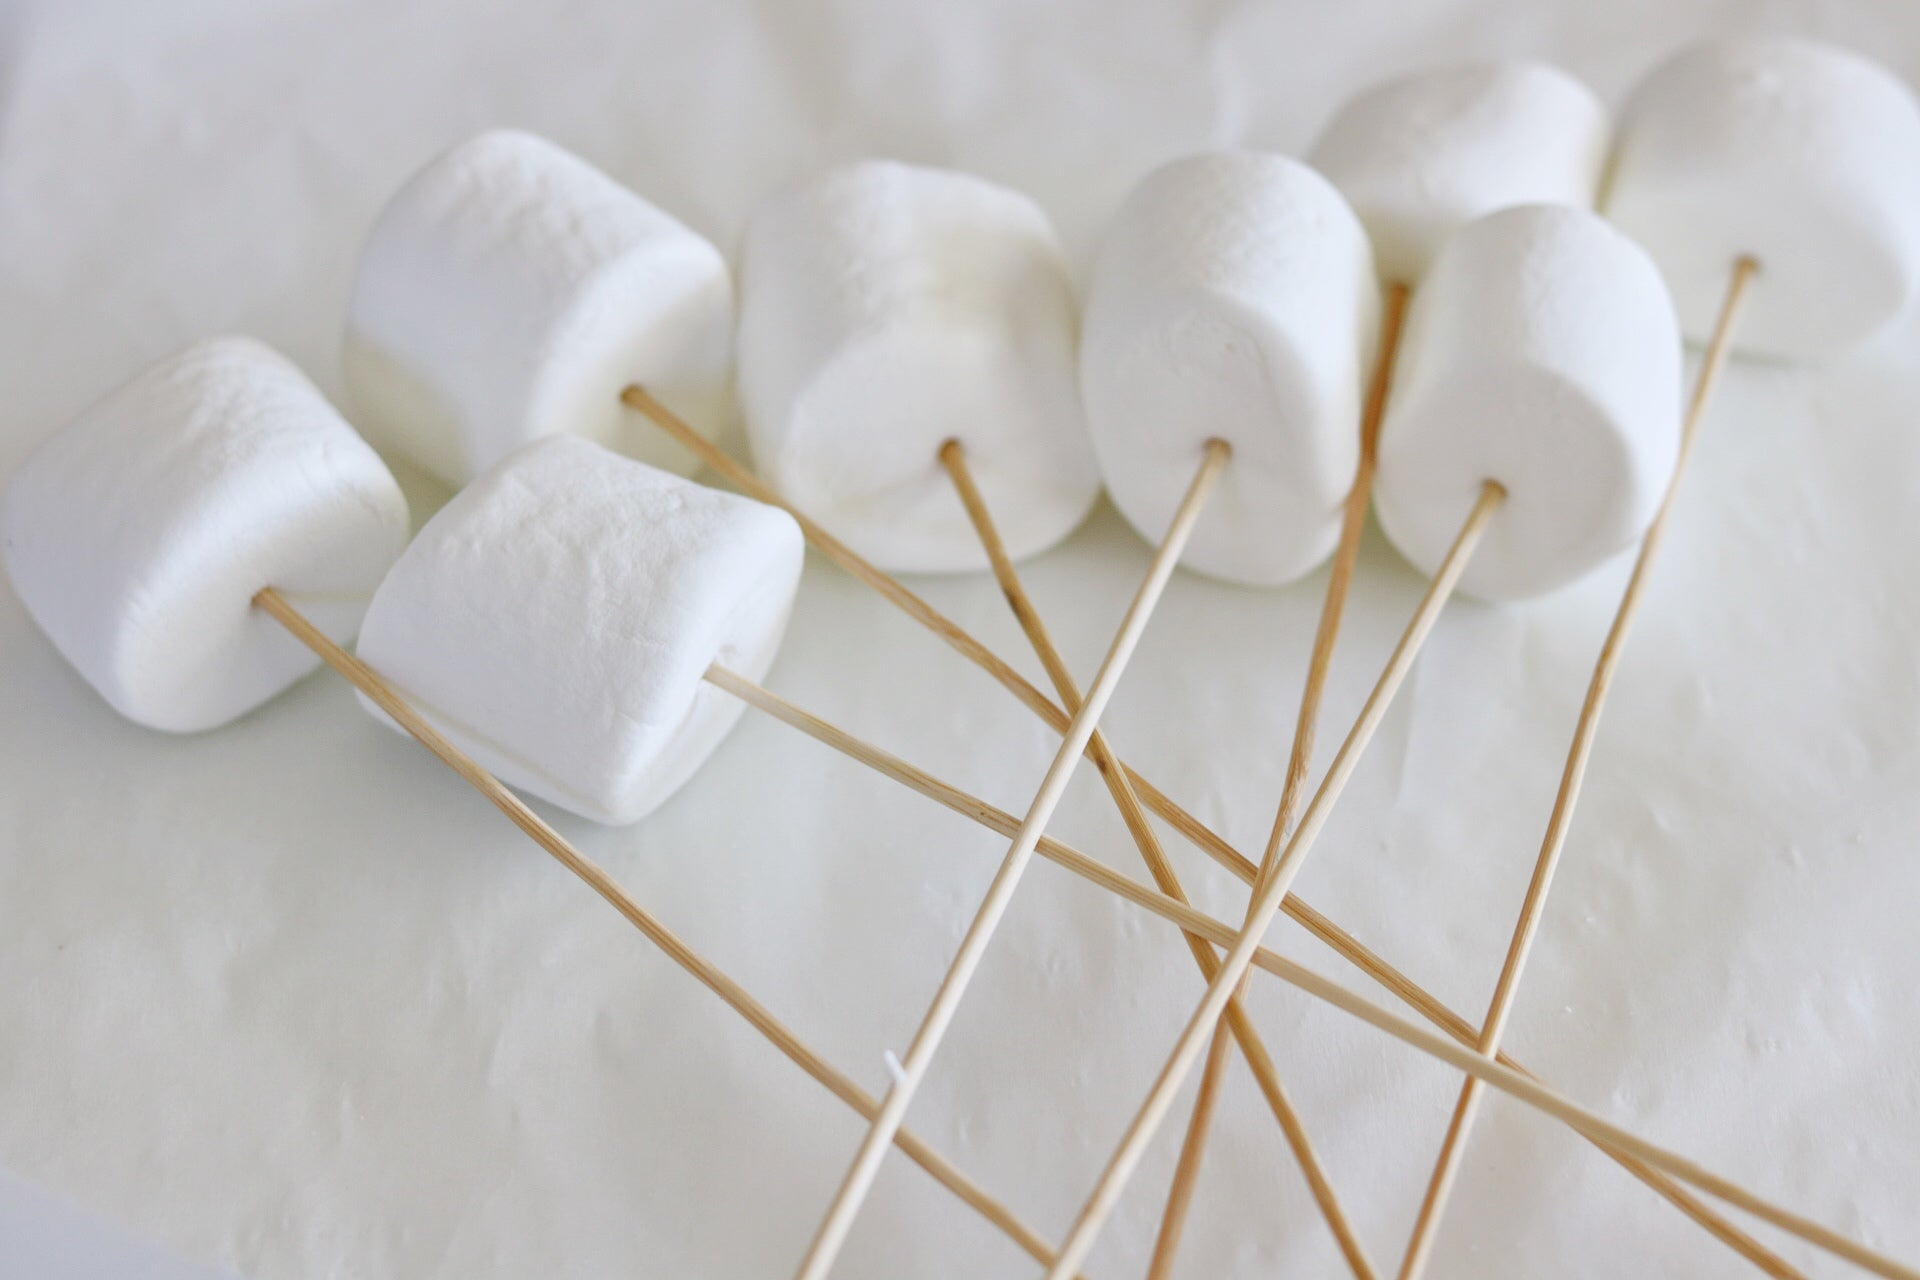 marshmallows on a screwer